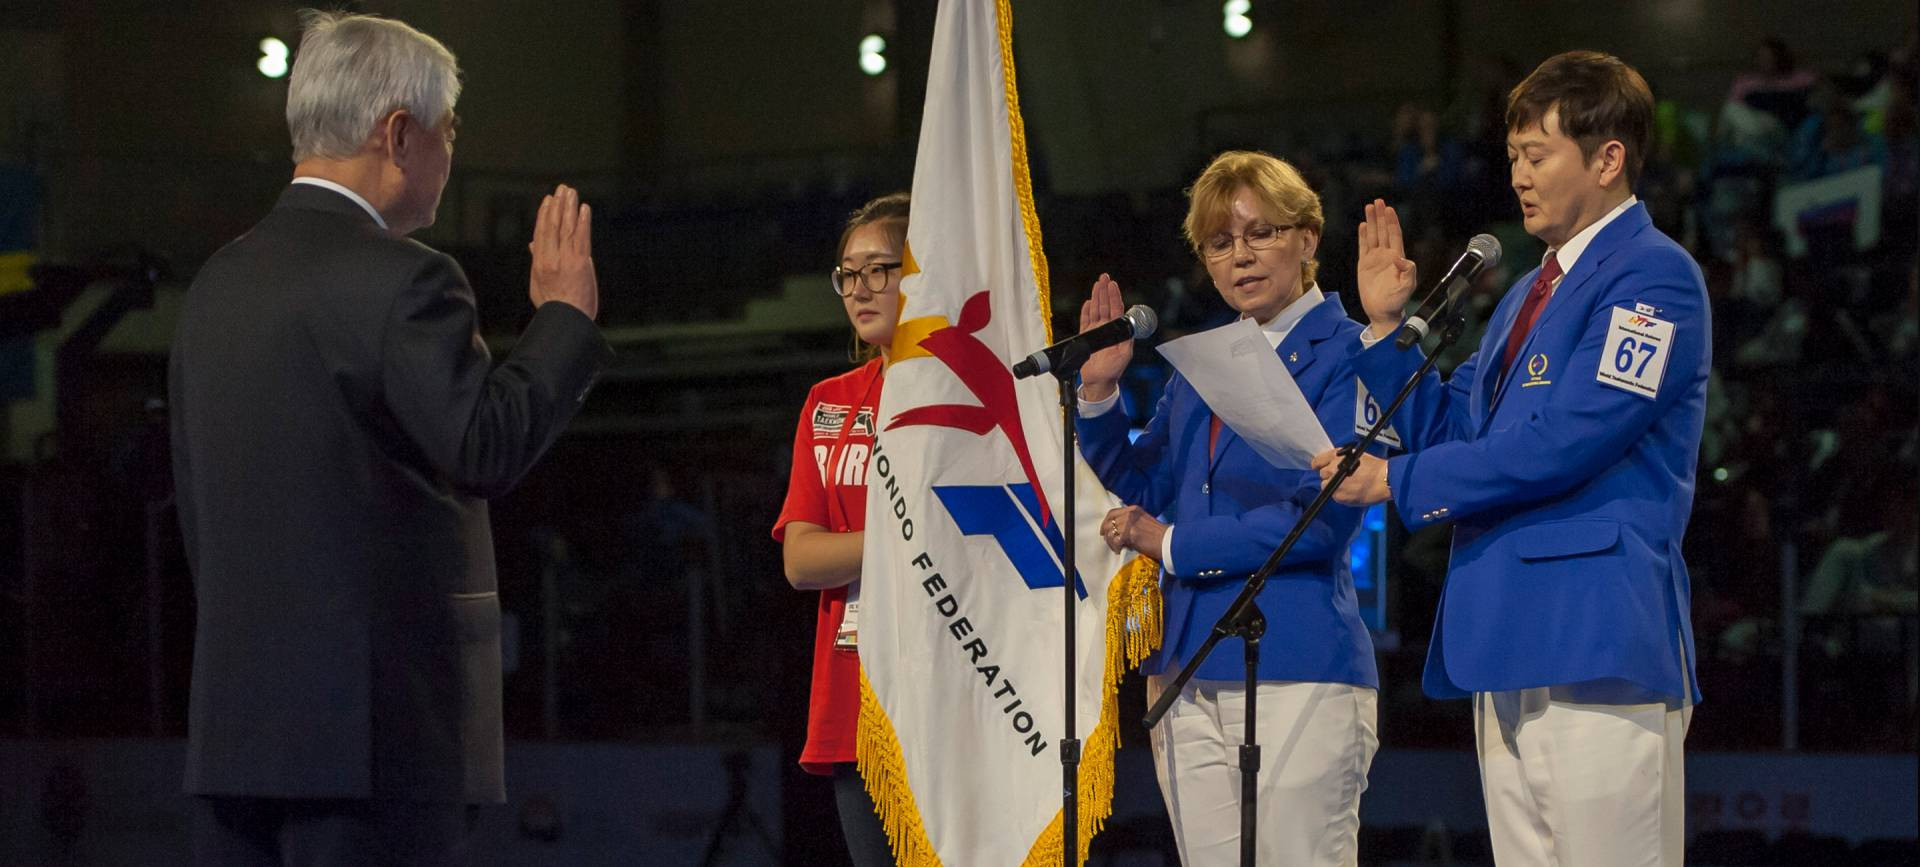 Marian appointed to Women in Taekwondo Committee